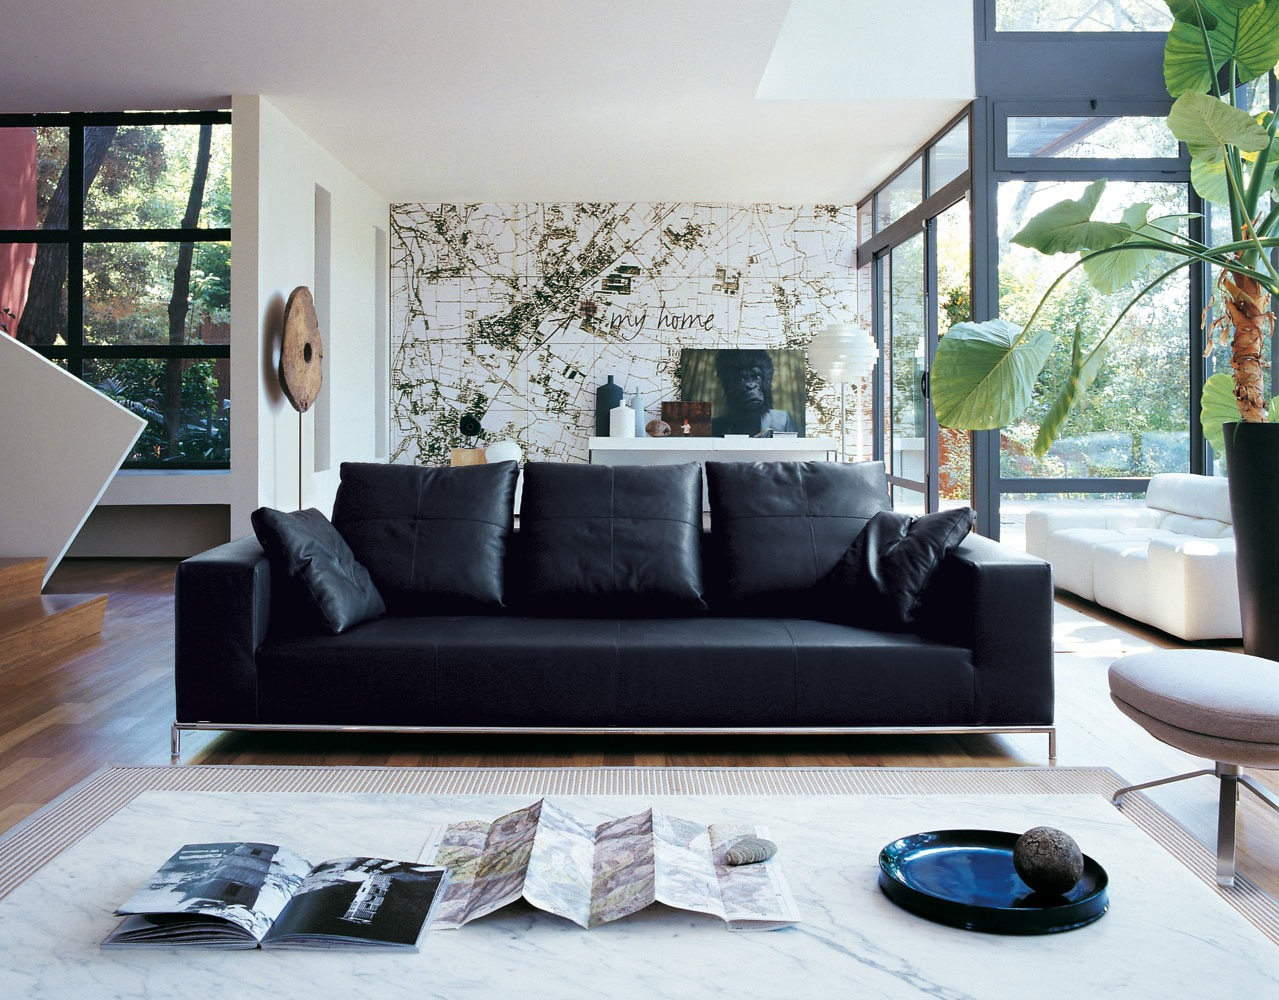 Black Leather Sofa Interior Design Ideas